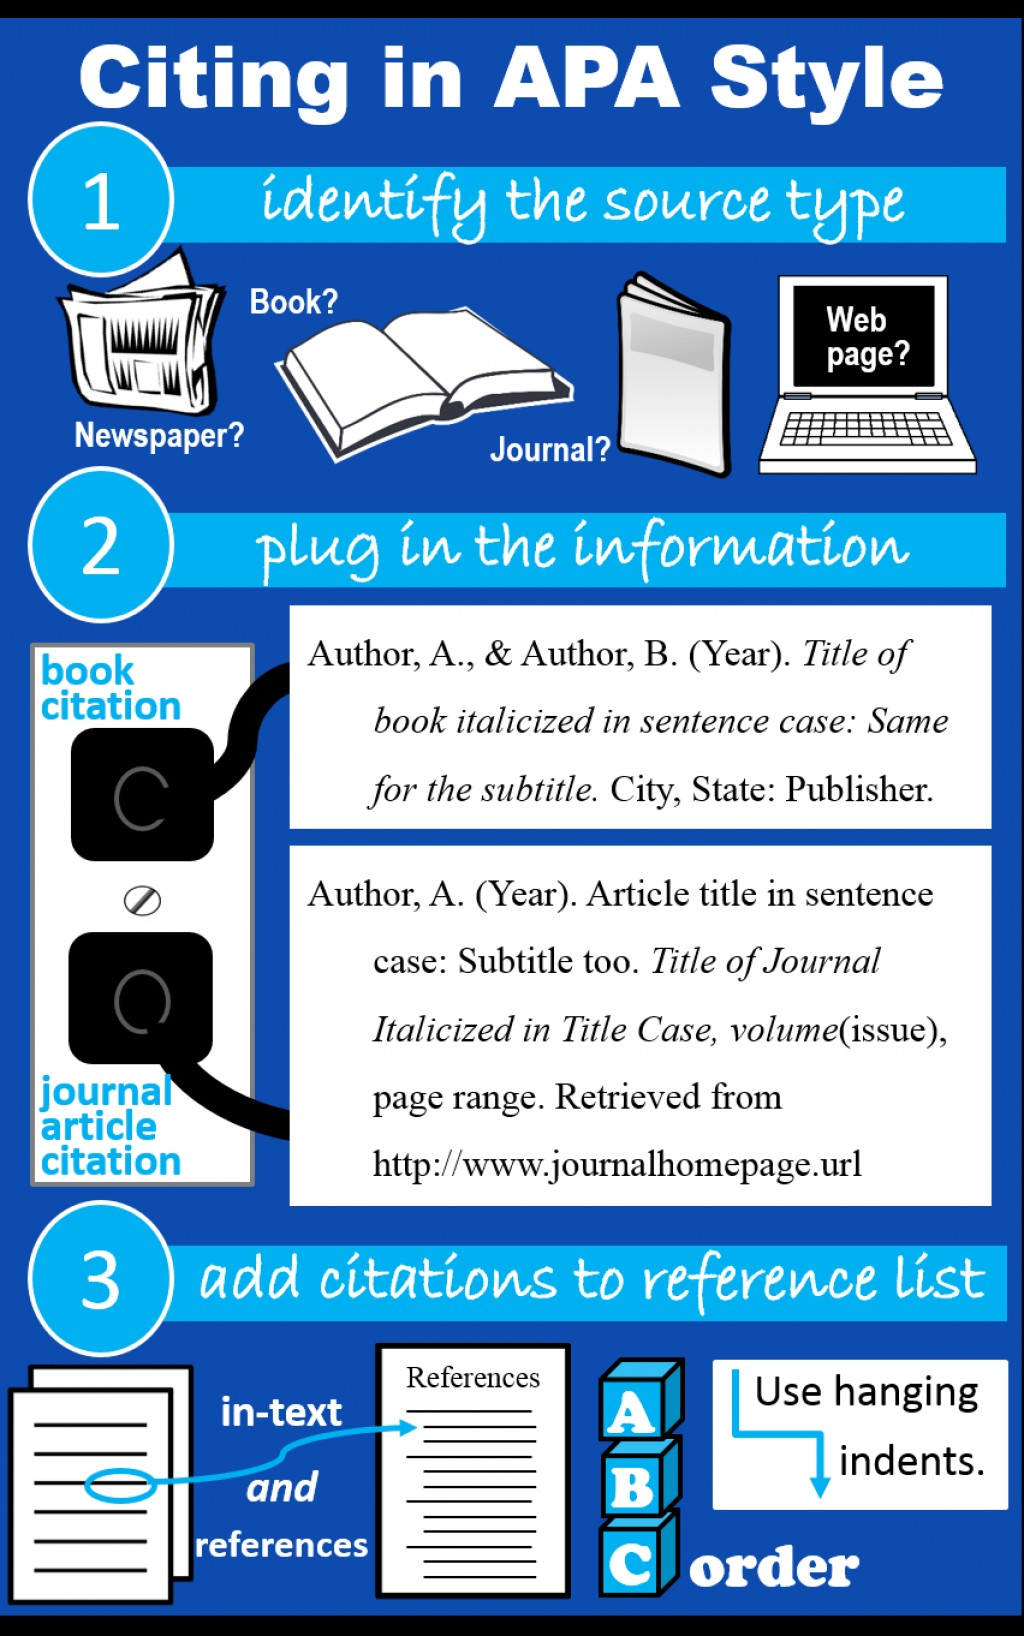 010 Research Paper Infographic Citing Sources In Paragraph Impressive Apa How To Cite A Style Large